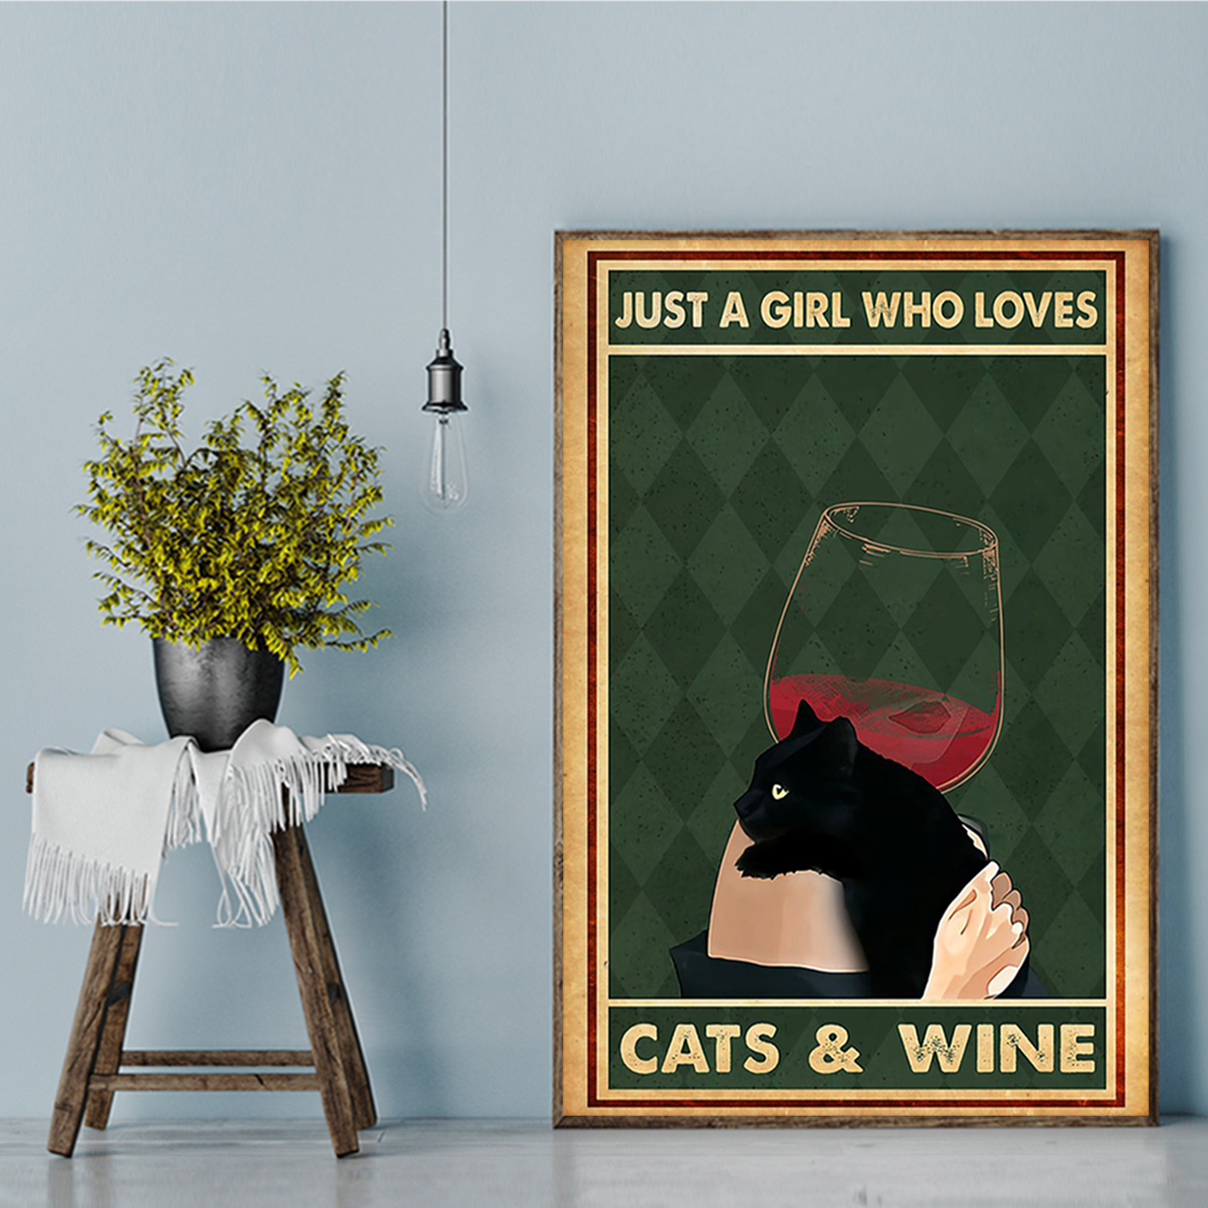 Just a girl who loves cats and wine poster A1